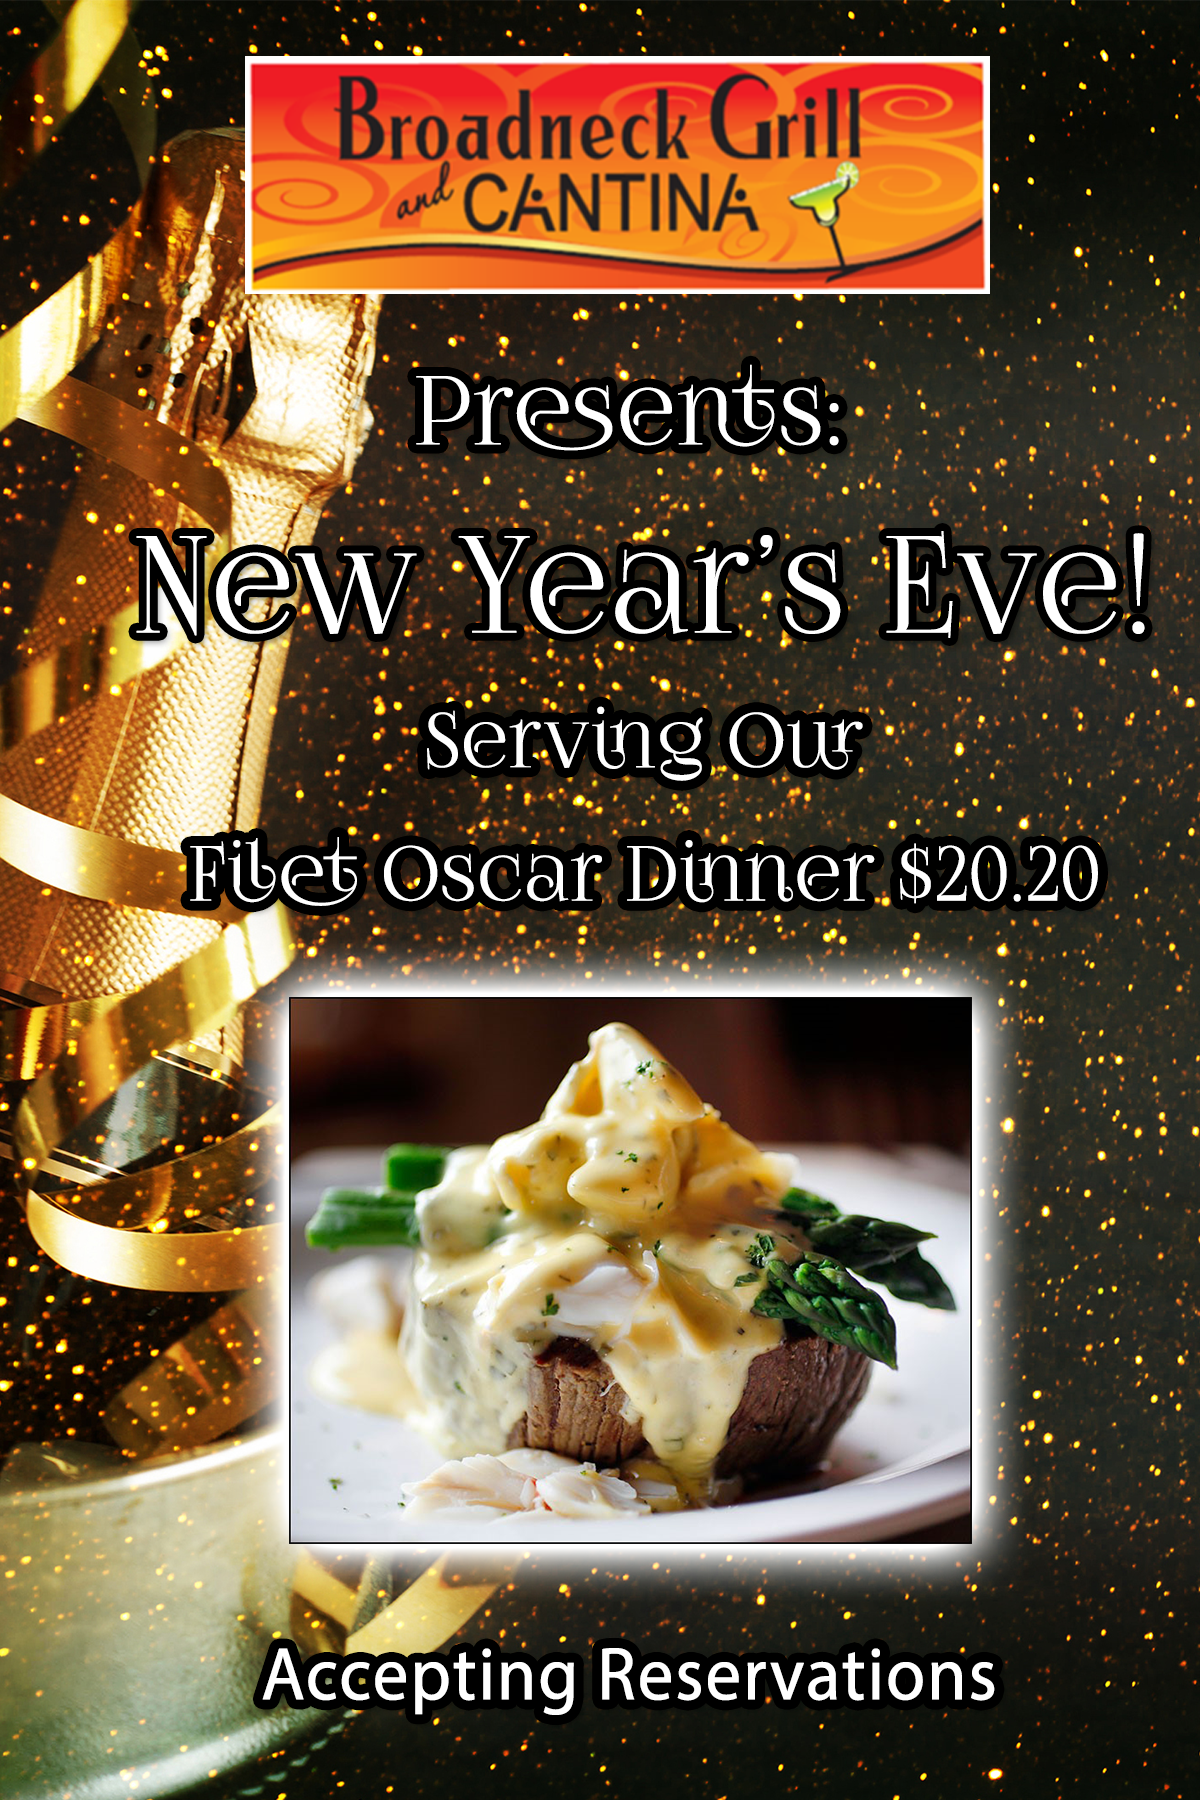 Broadneck Grill presents New Years Eve! Serving oru Filet Oscar Dinner, $20.20. Accepting Reservations.